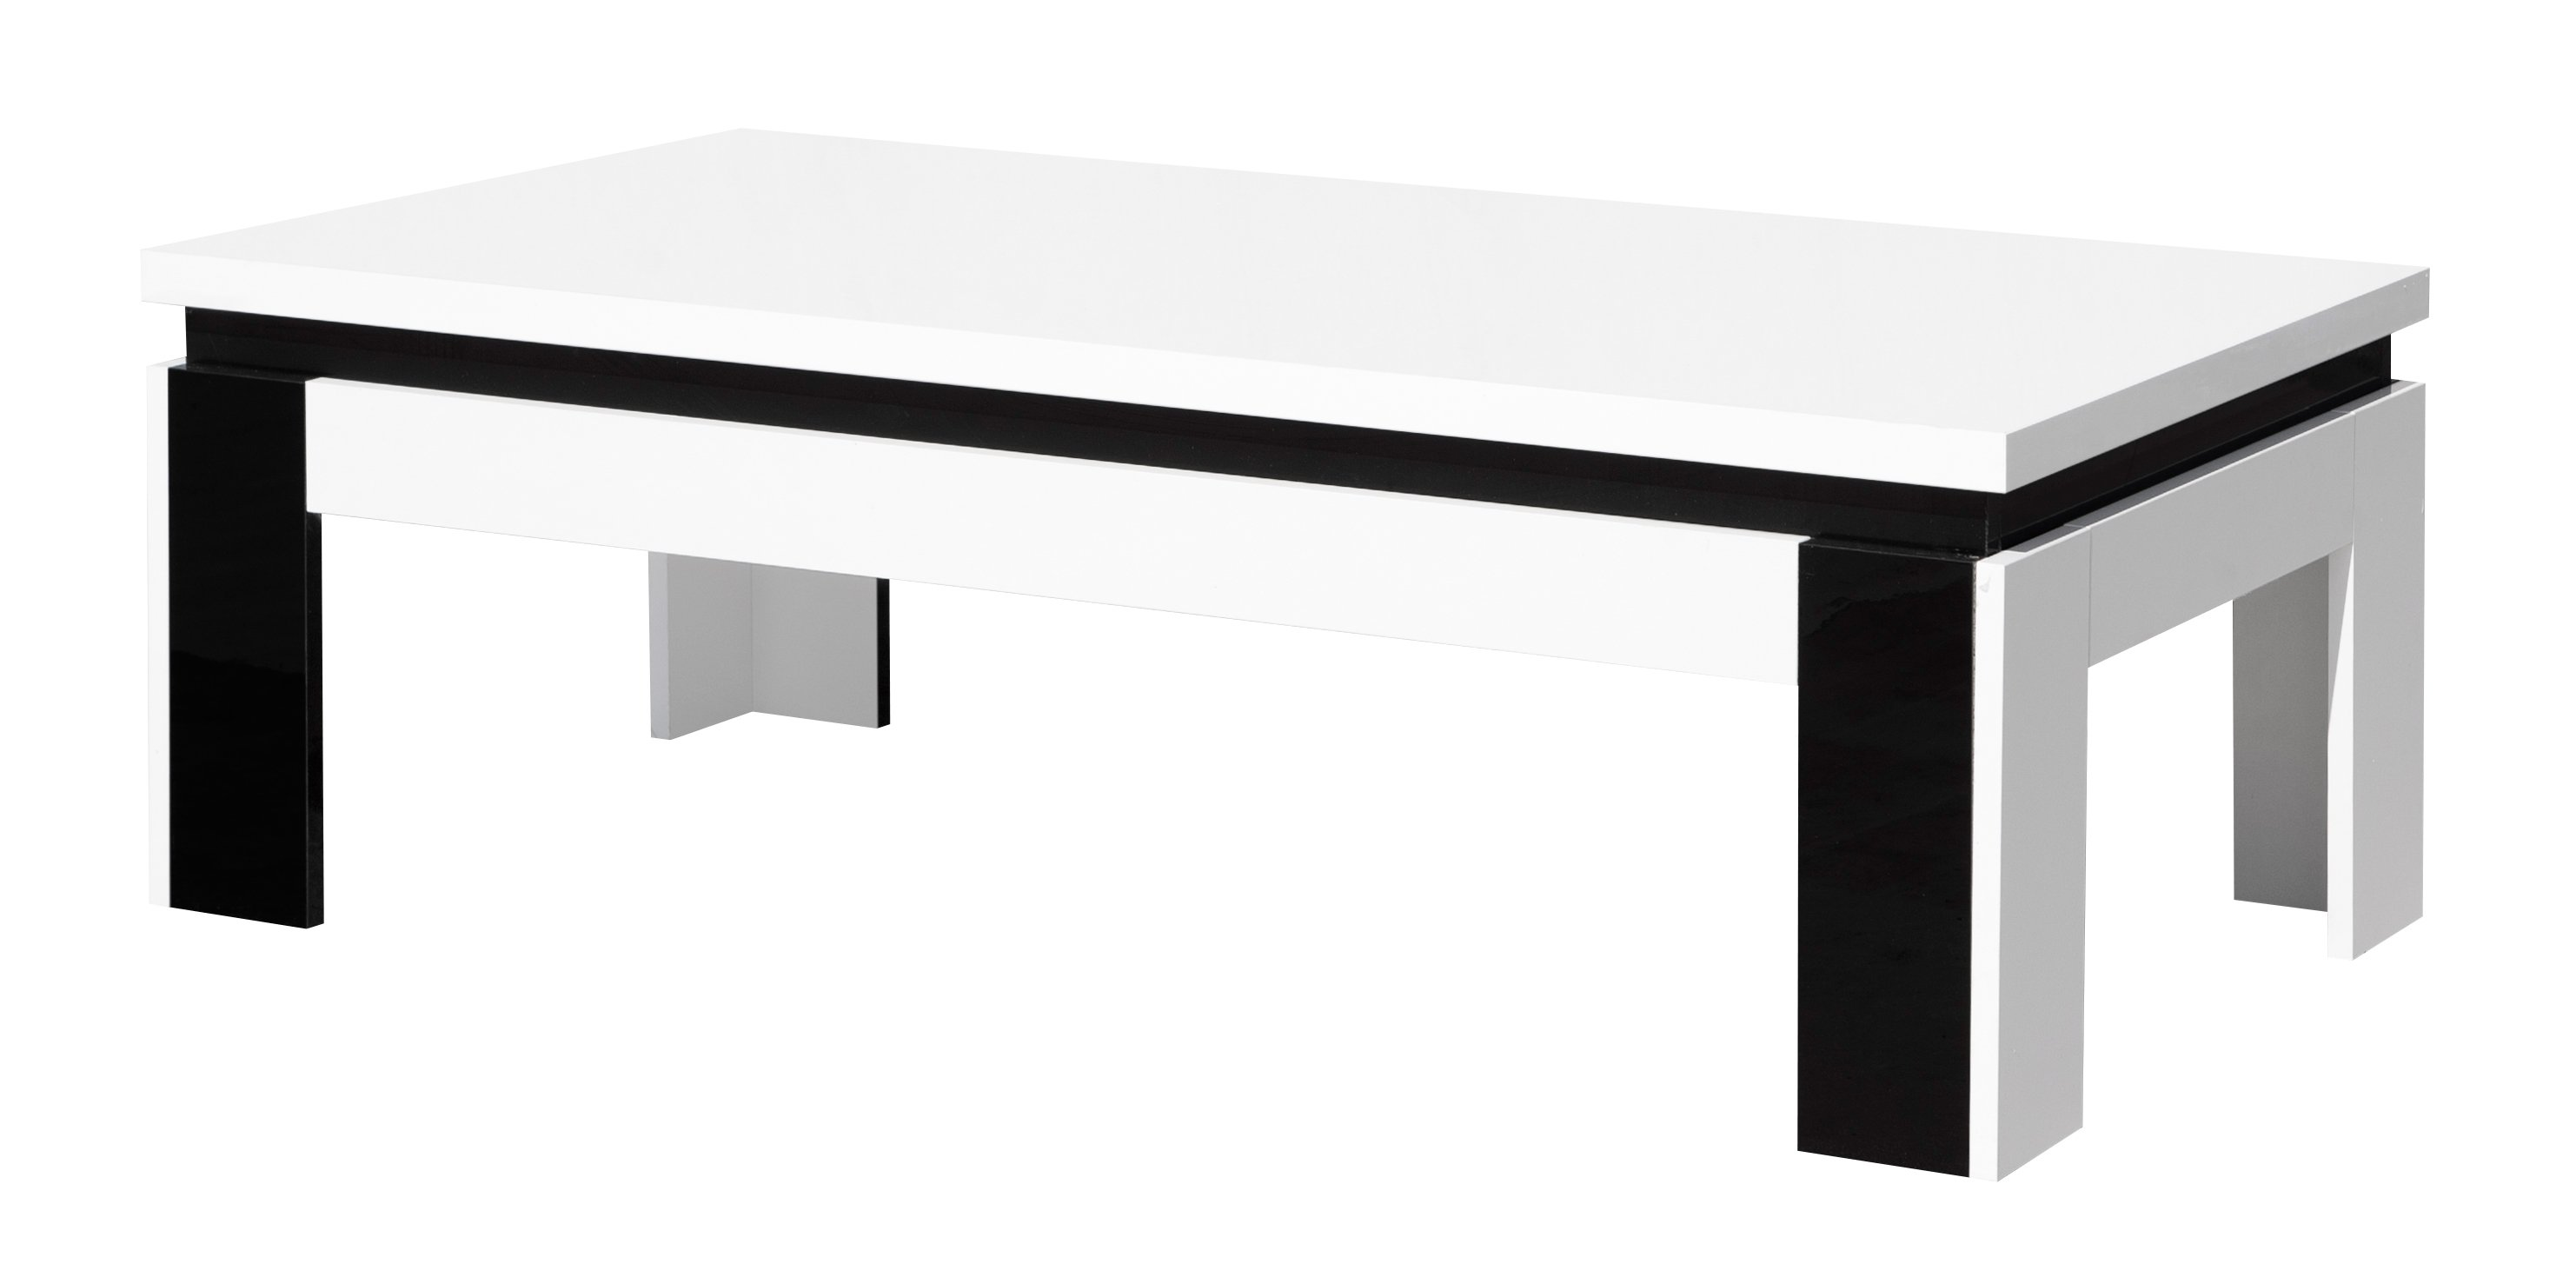 Basse Coloris Design Rectangulaire Table Brillant Tessa Blancnoir kXZiuPOT